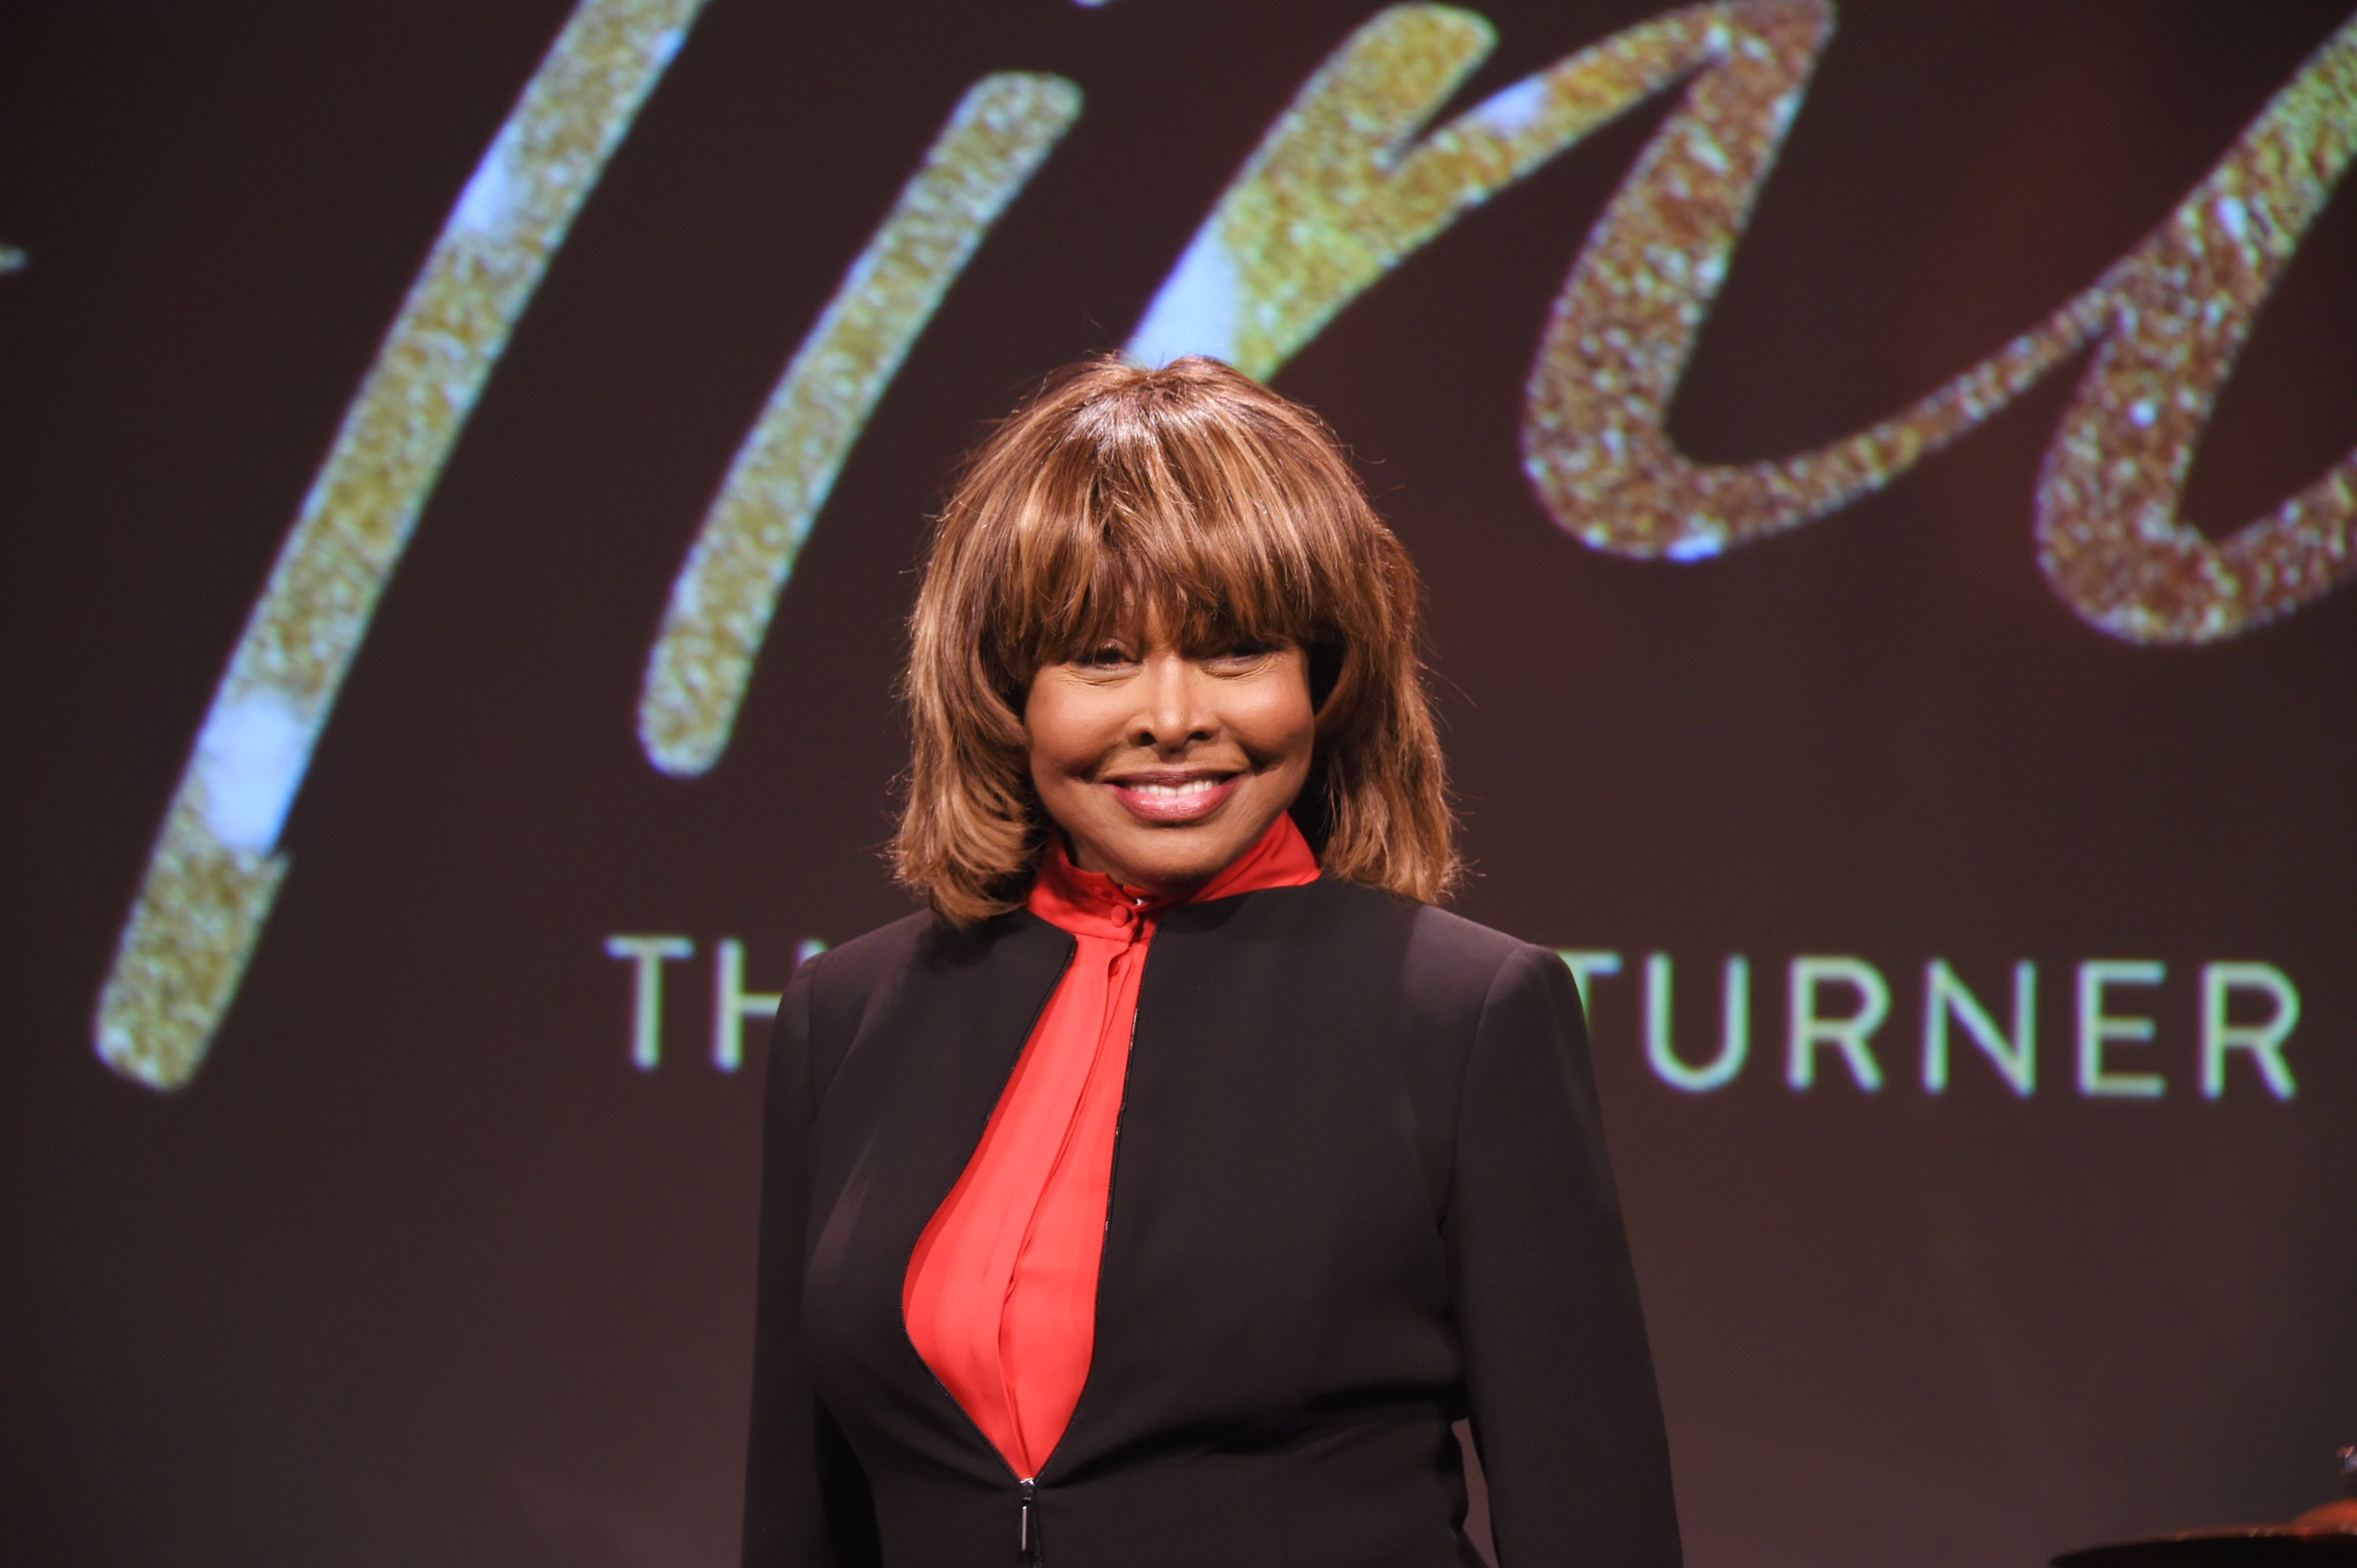 Tina Turner at 'TINA: The Tina Turner Musical' at Aldwych Theatre on Oct. 17, 2017 in London. | Photo: Getty Images